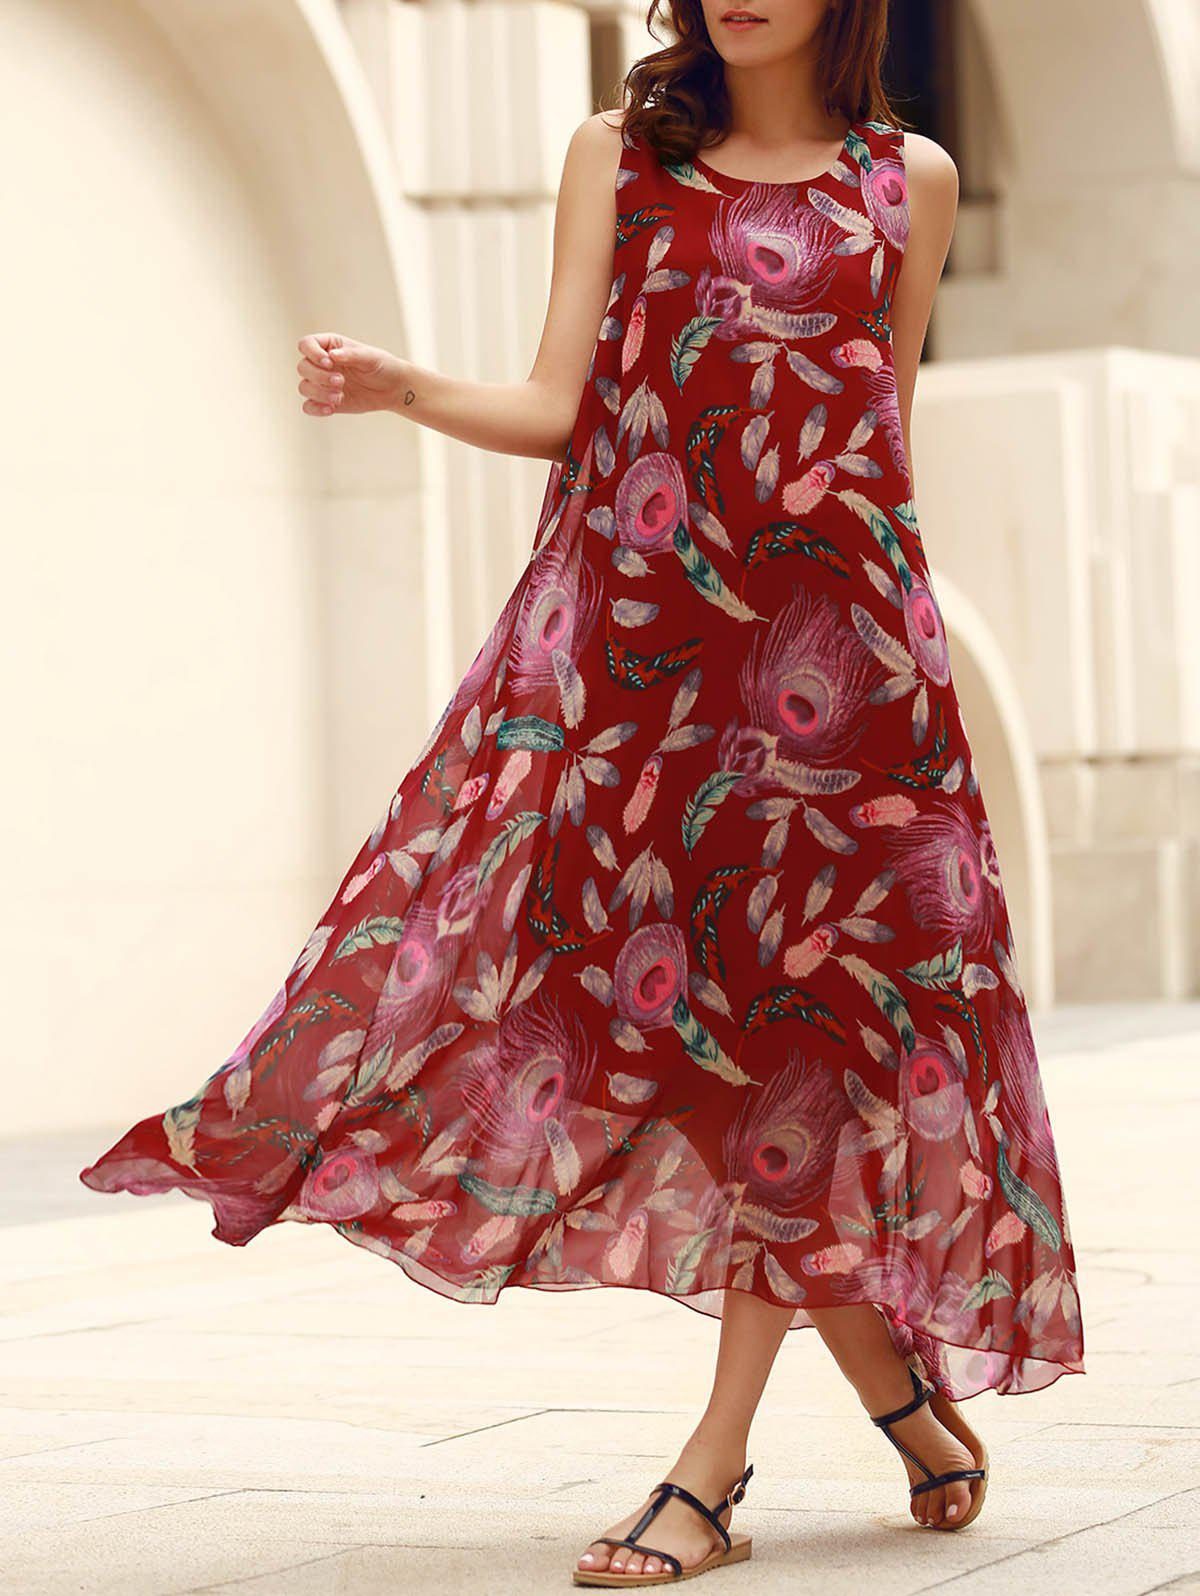 Bohemian Sleeveless Scoop Neck Feather Print Women's Dress - DEEP RED ONE SIZE(FIT SIZE XS TO M)